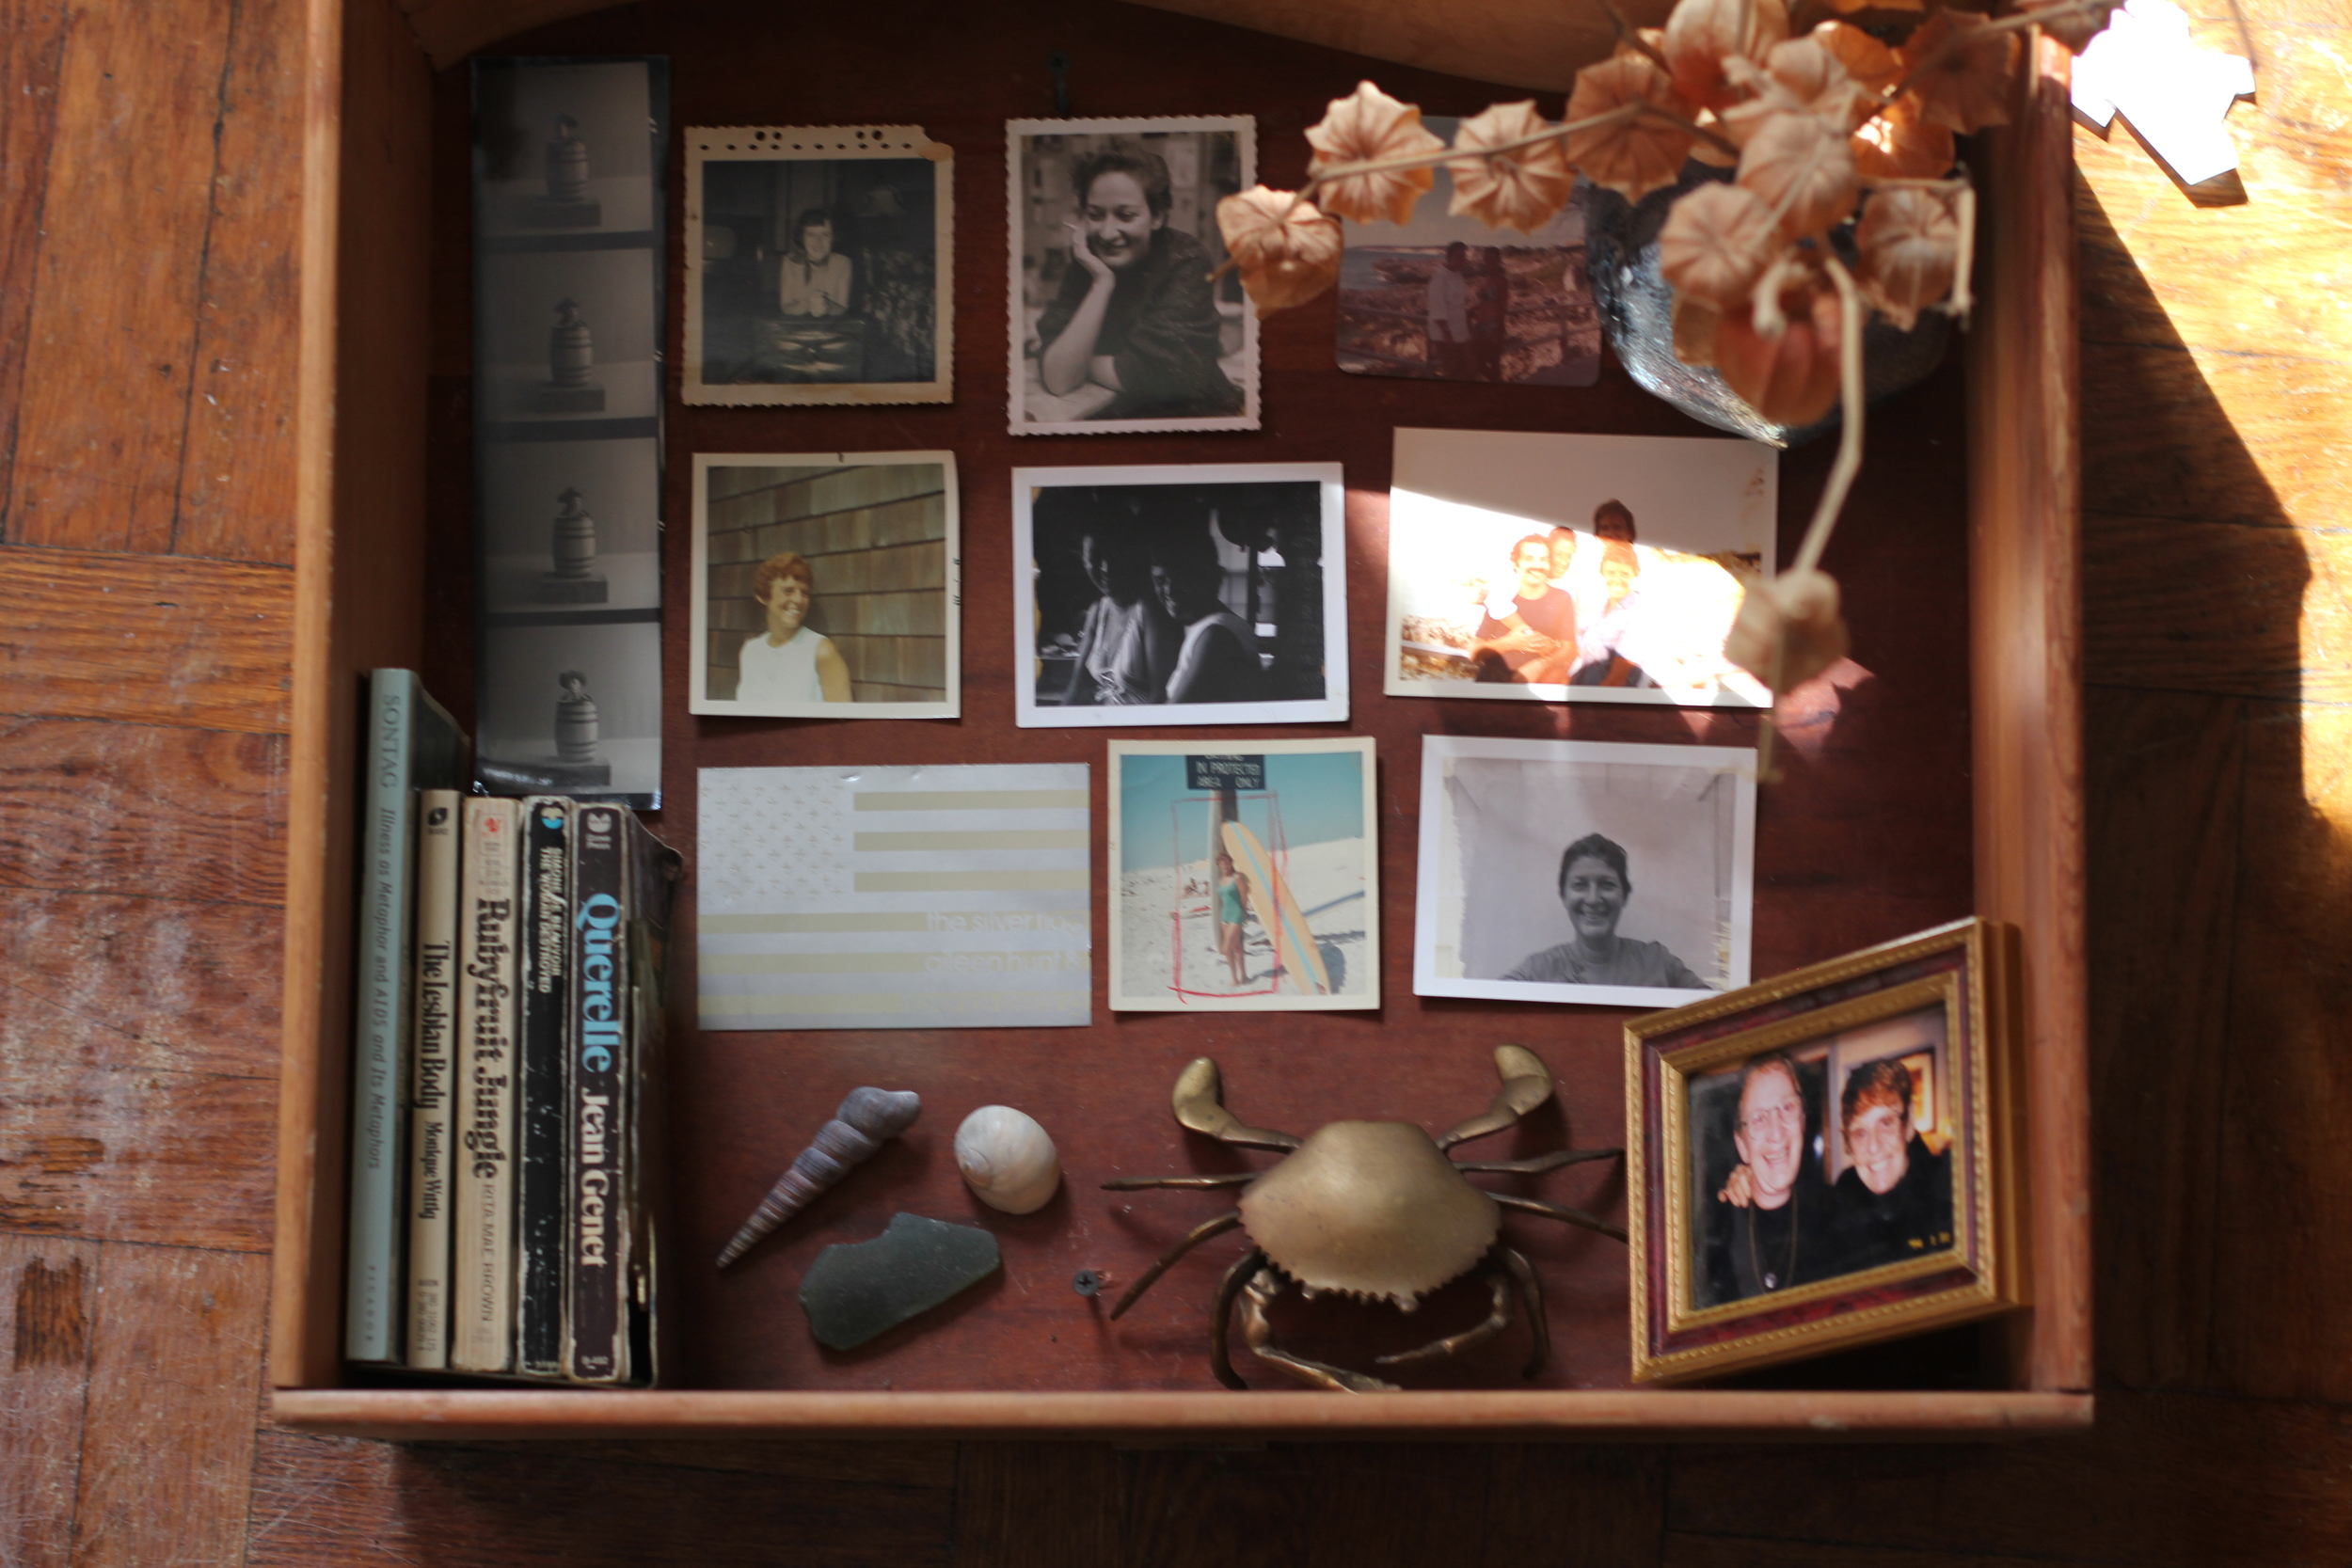 an empty drawer decorated with old photographs, books, and sea shells